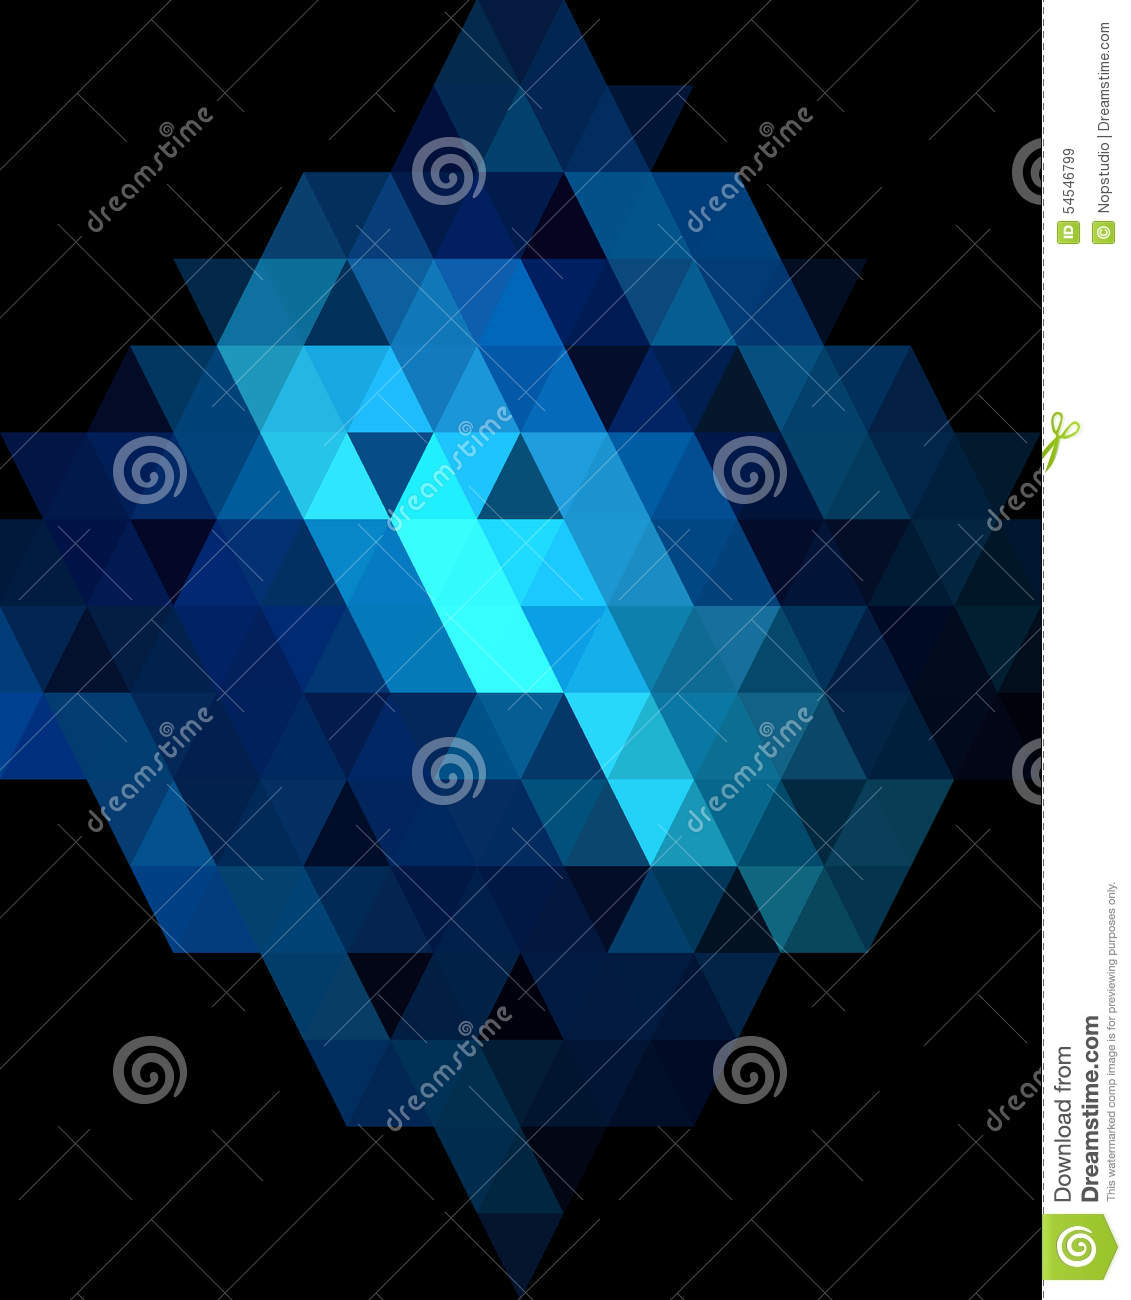 deep blue diamond graphic background stock vector - illustration of